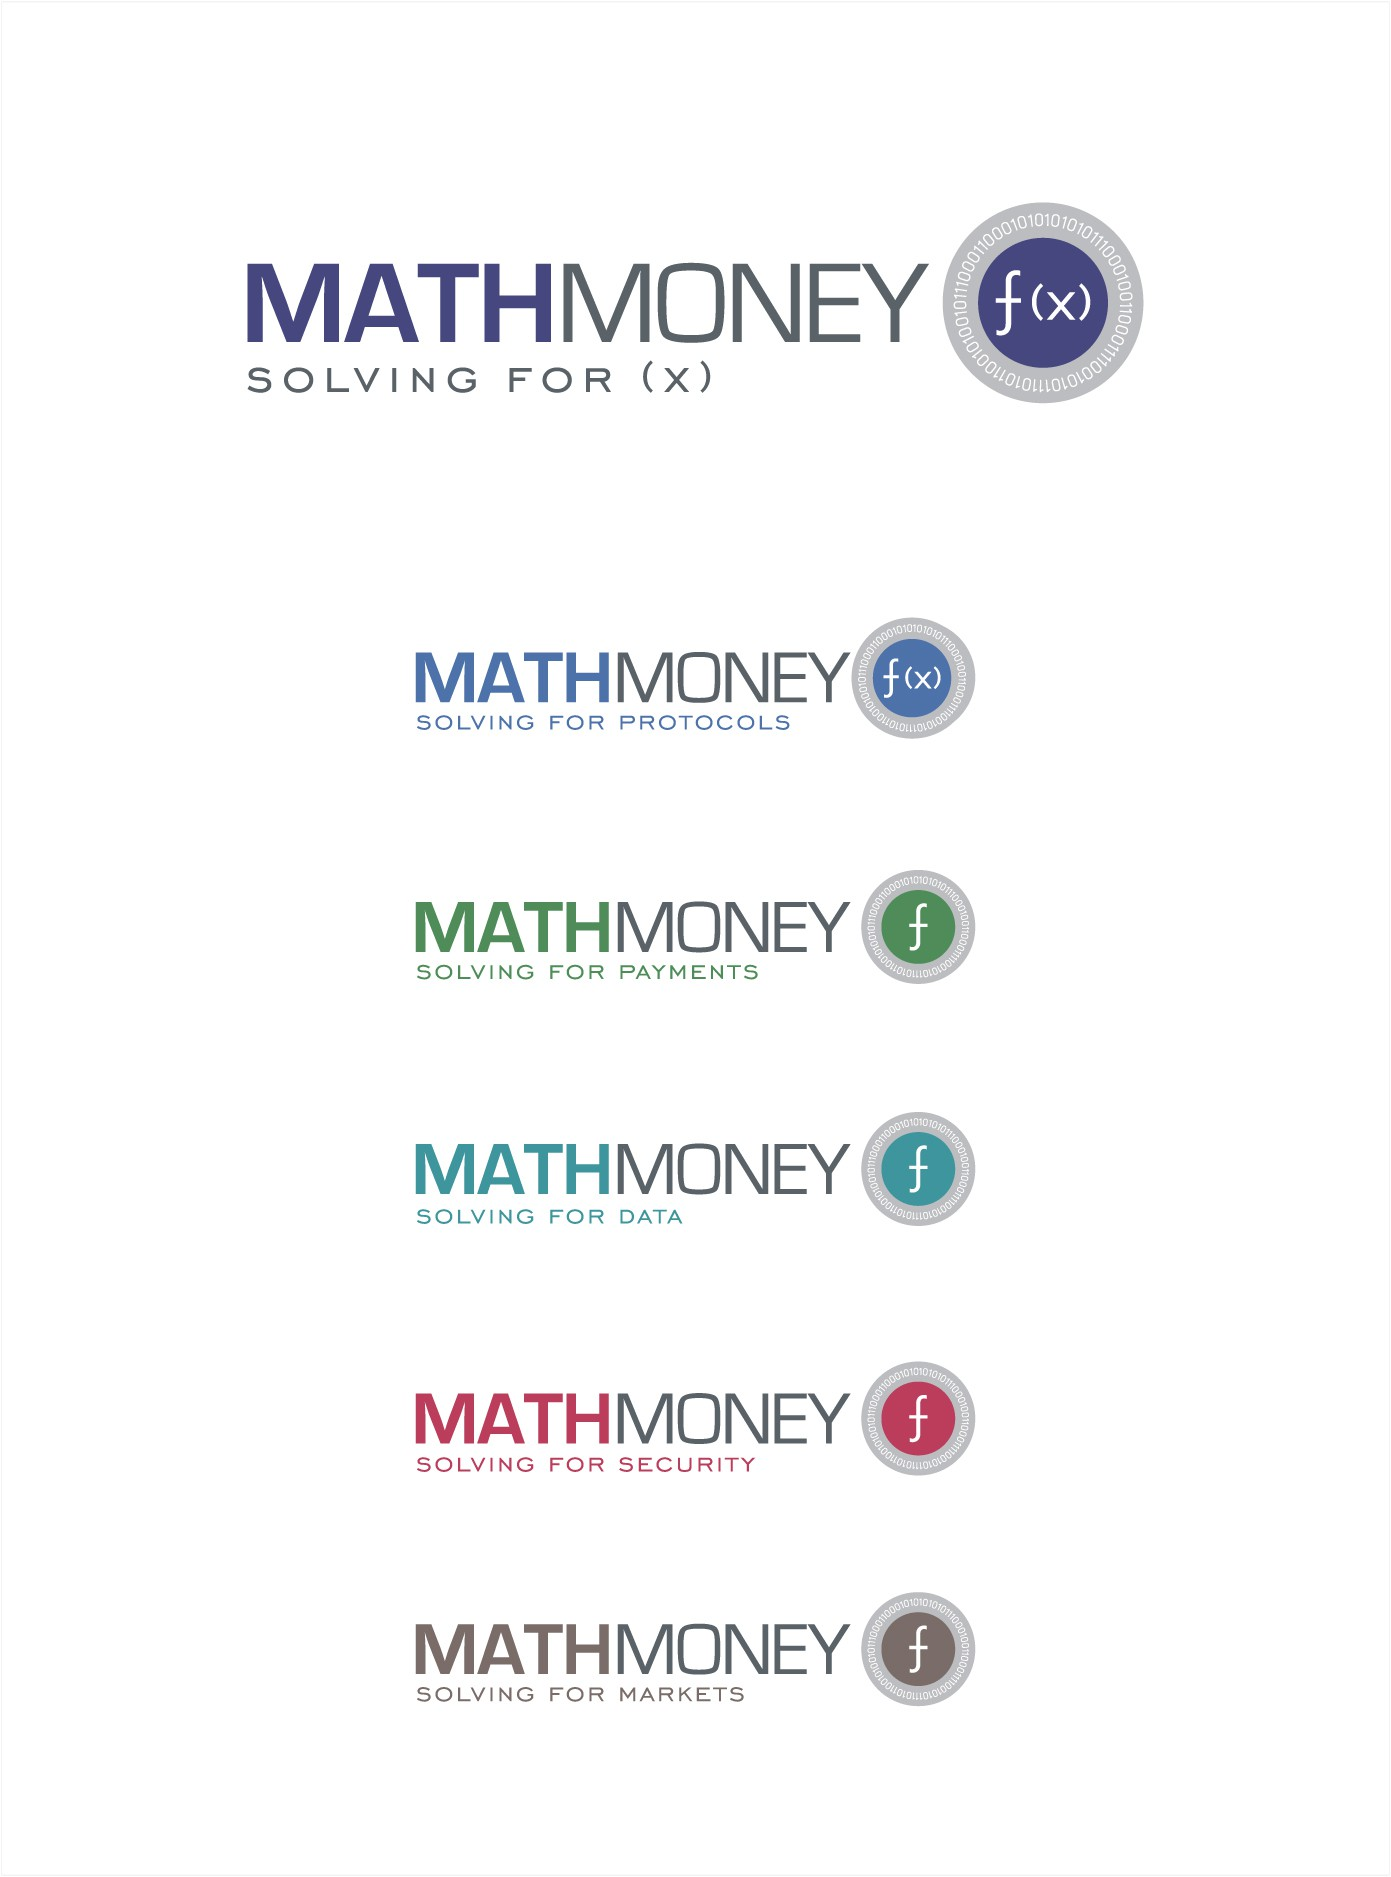 capture the innovative spirit of math-based currencies with the traditonal values of trust